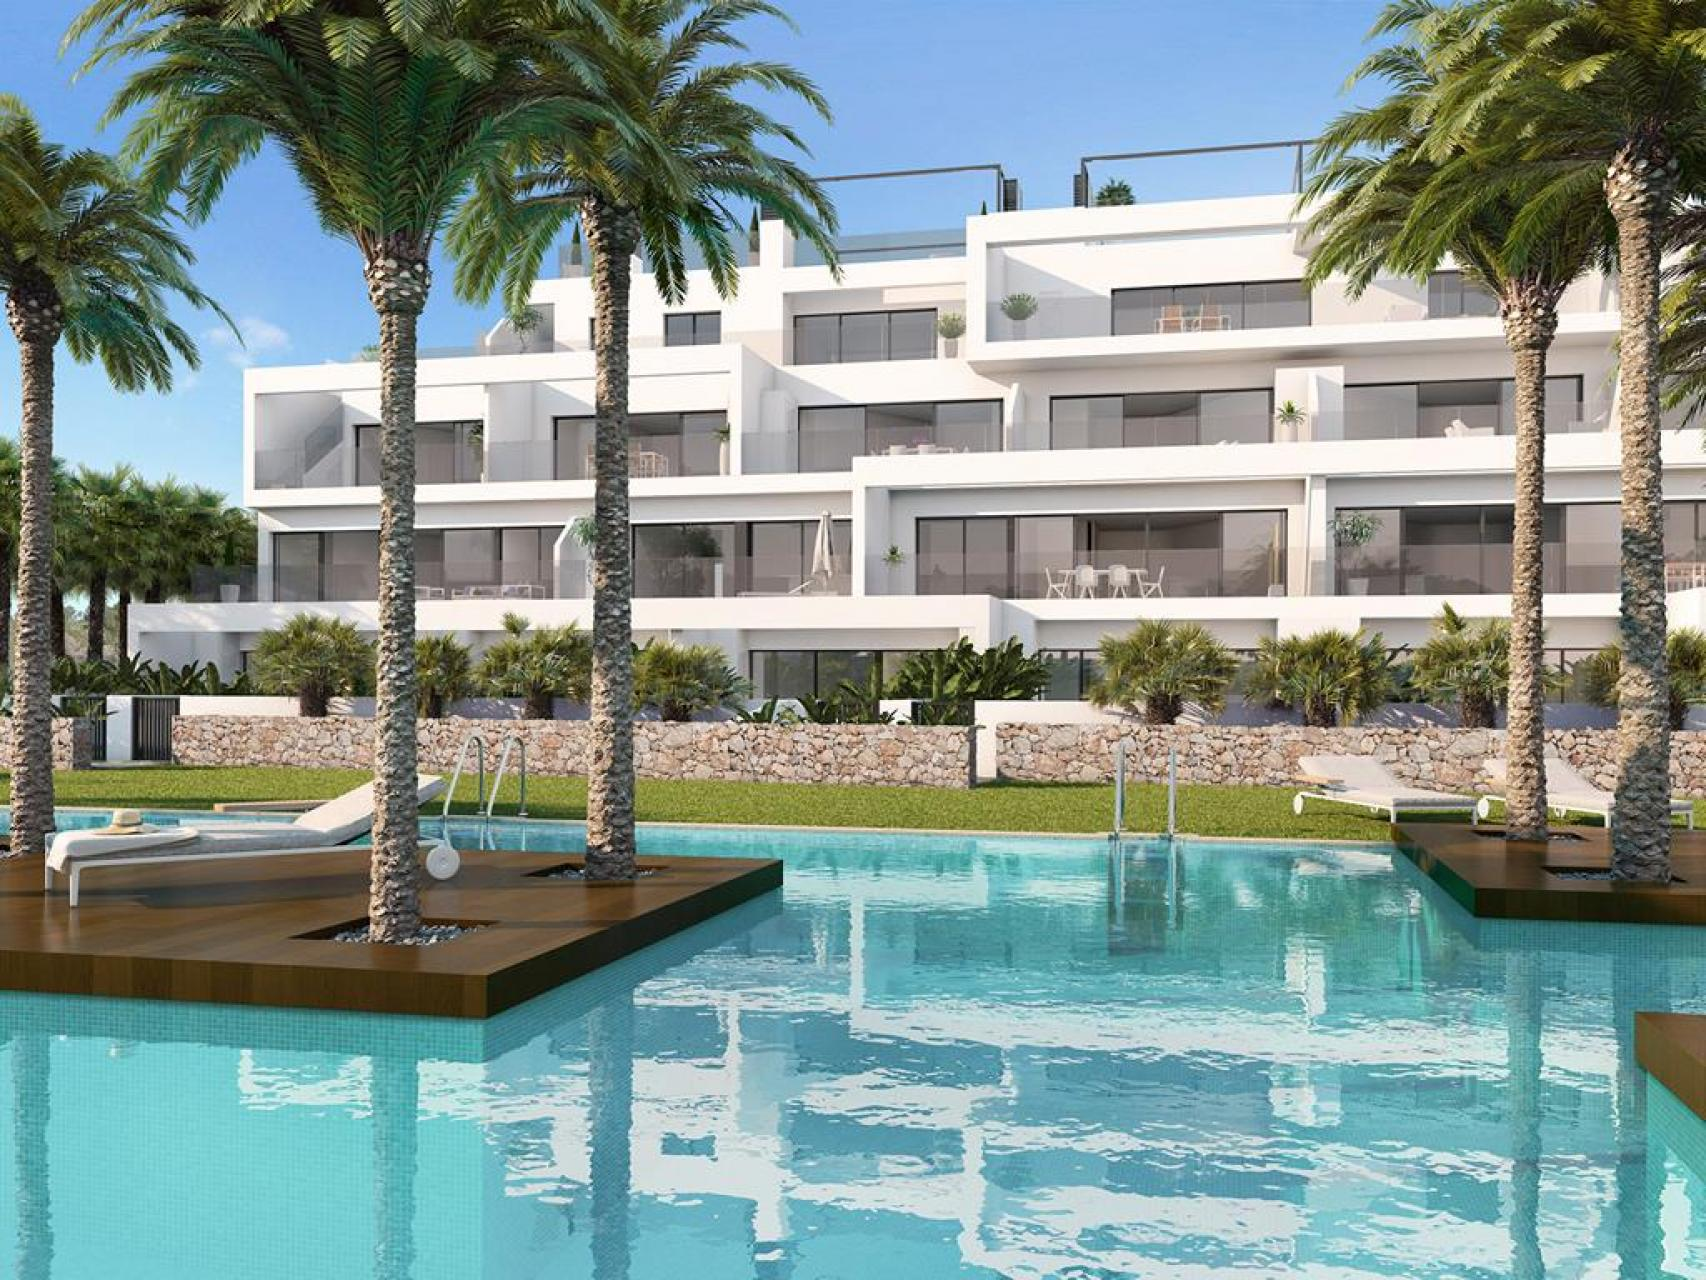 Apartment in San Miguel De Salinas (Alicante)